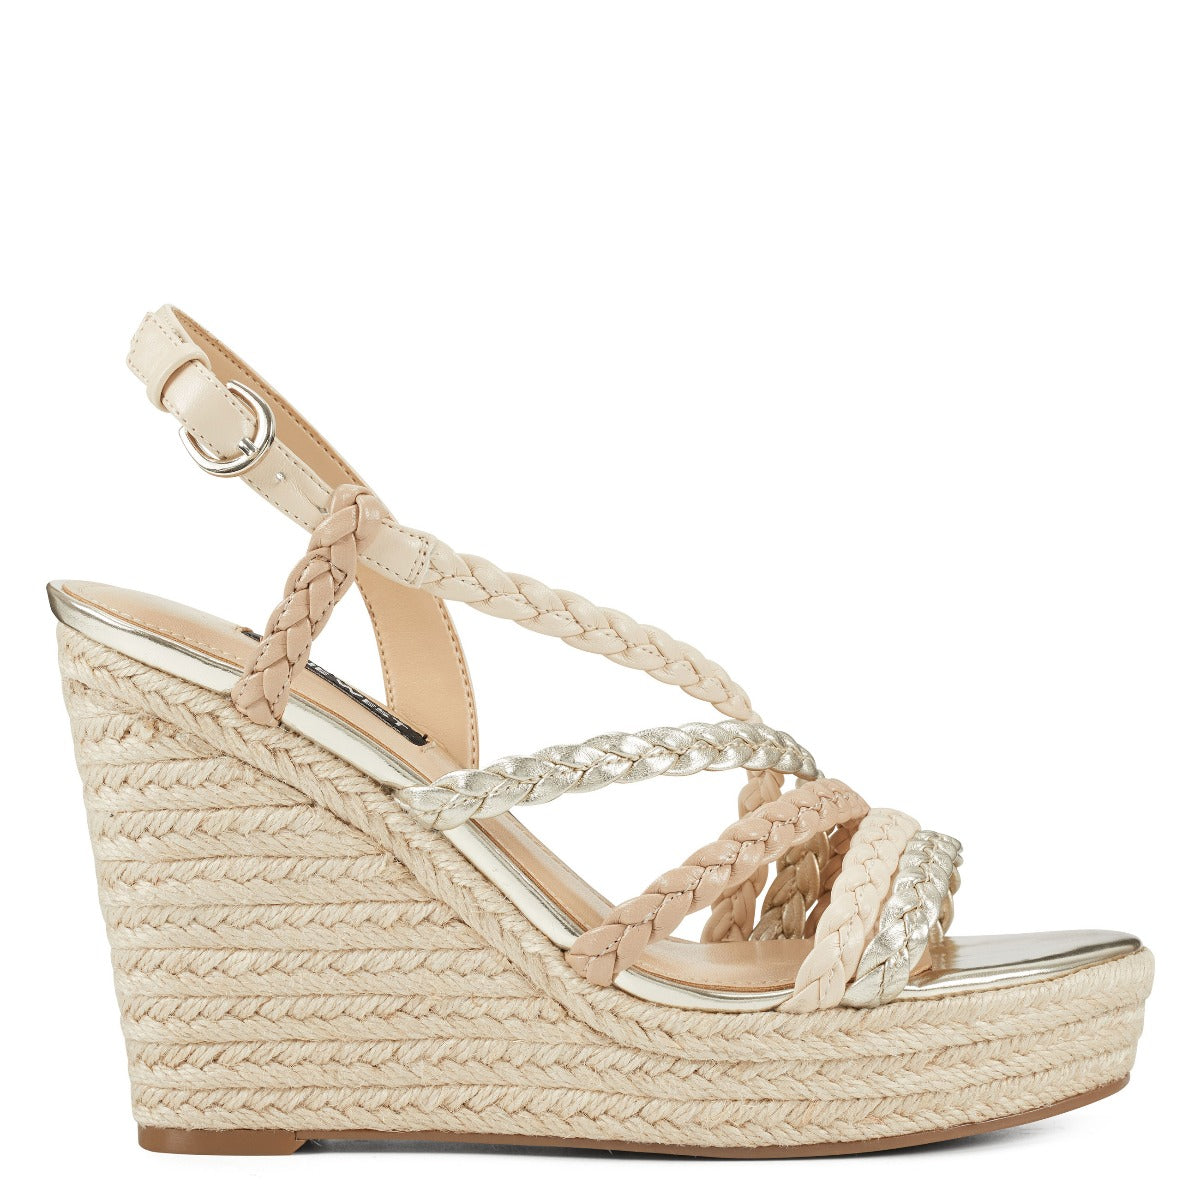 Halsee Espadrille Wedge Sandals